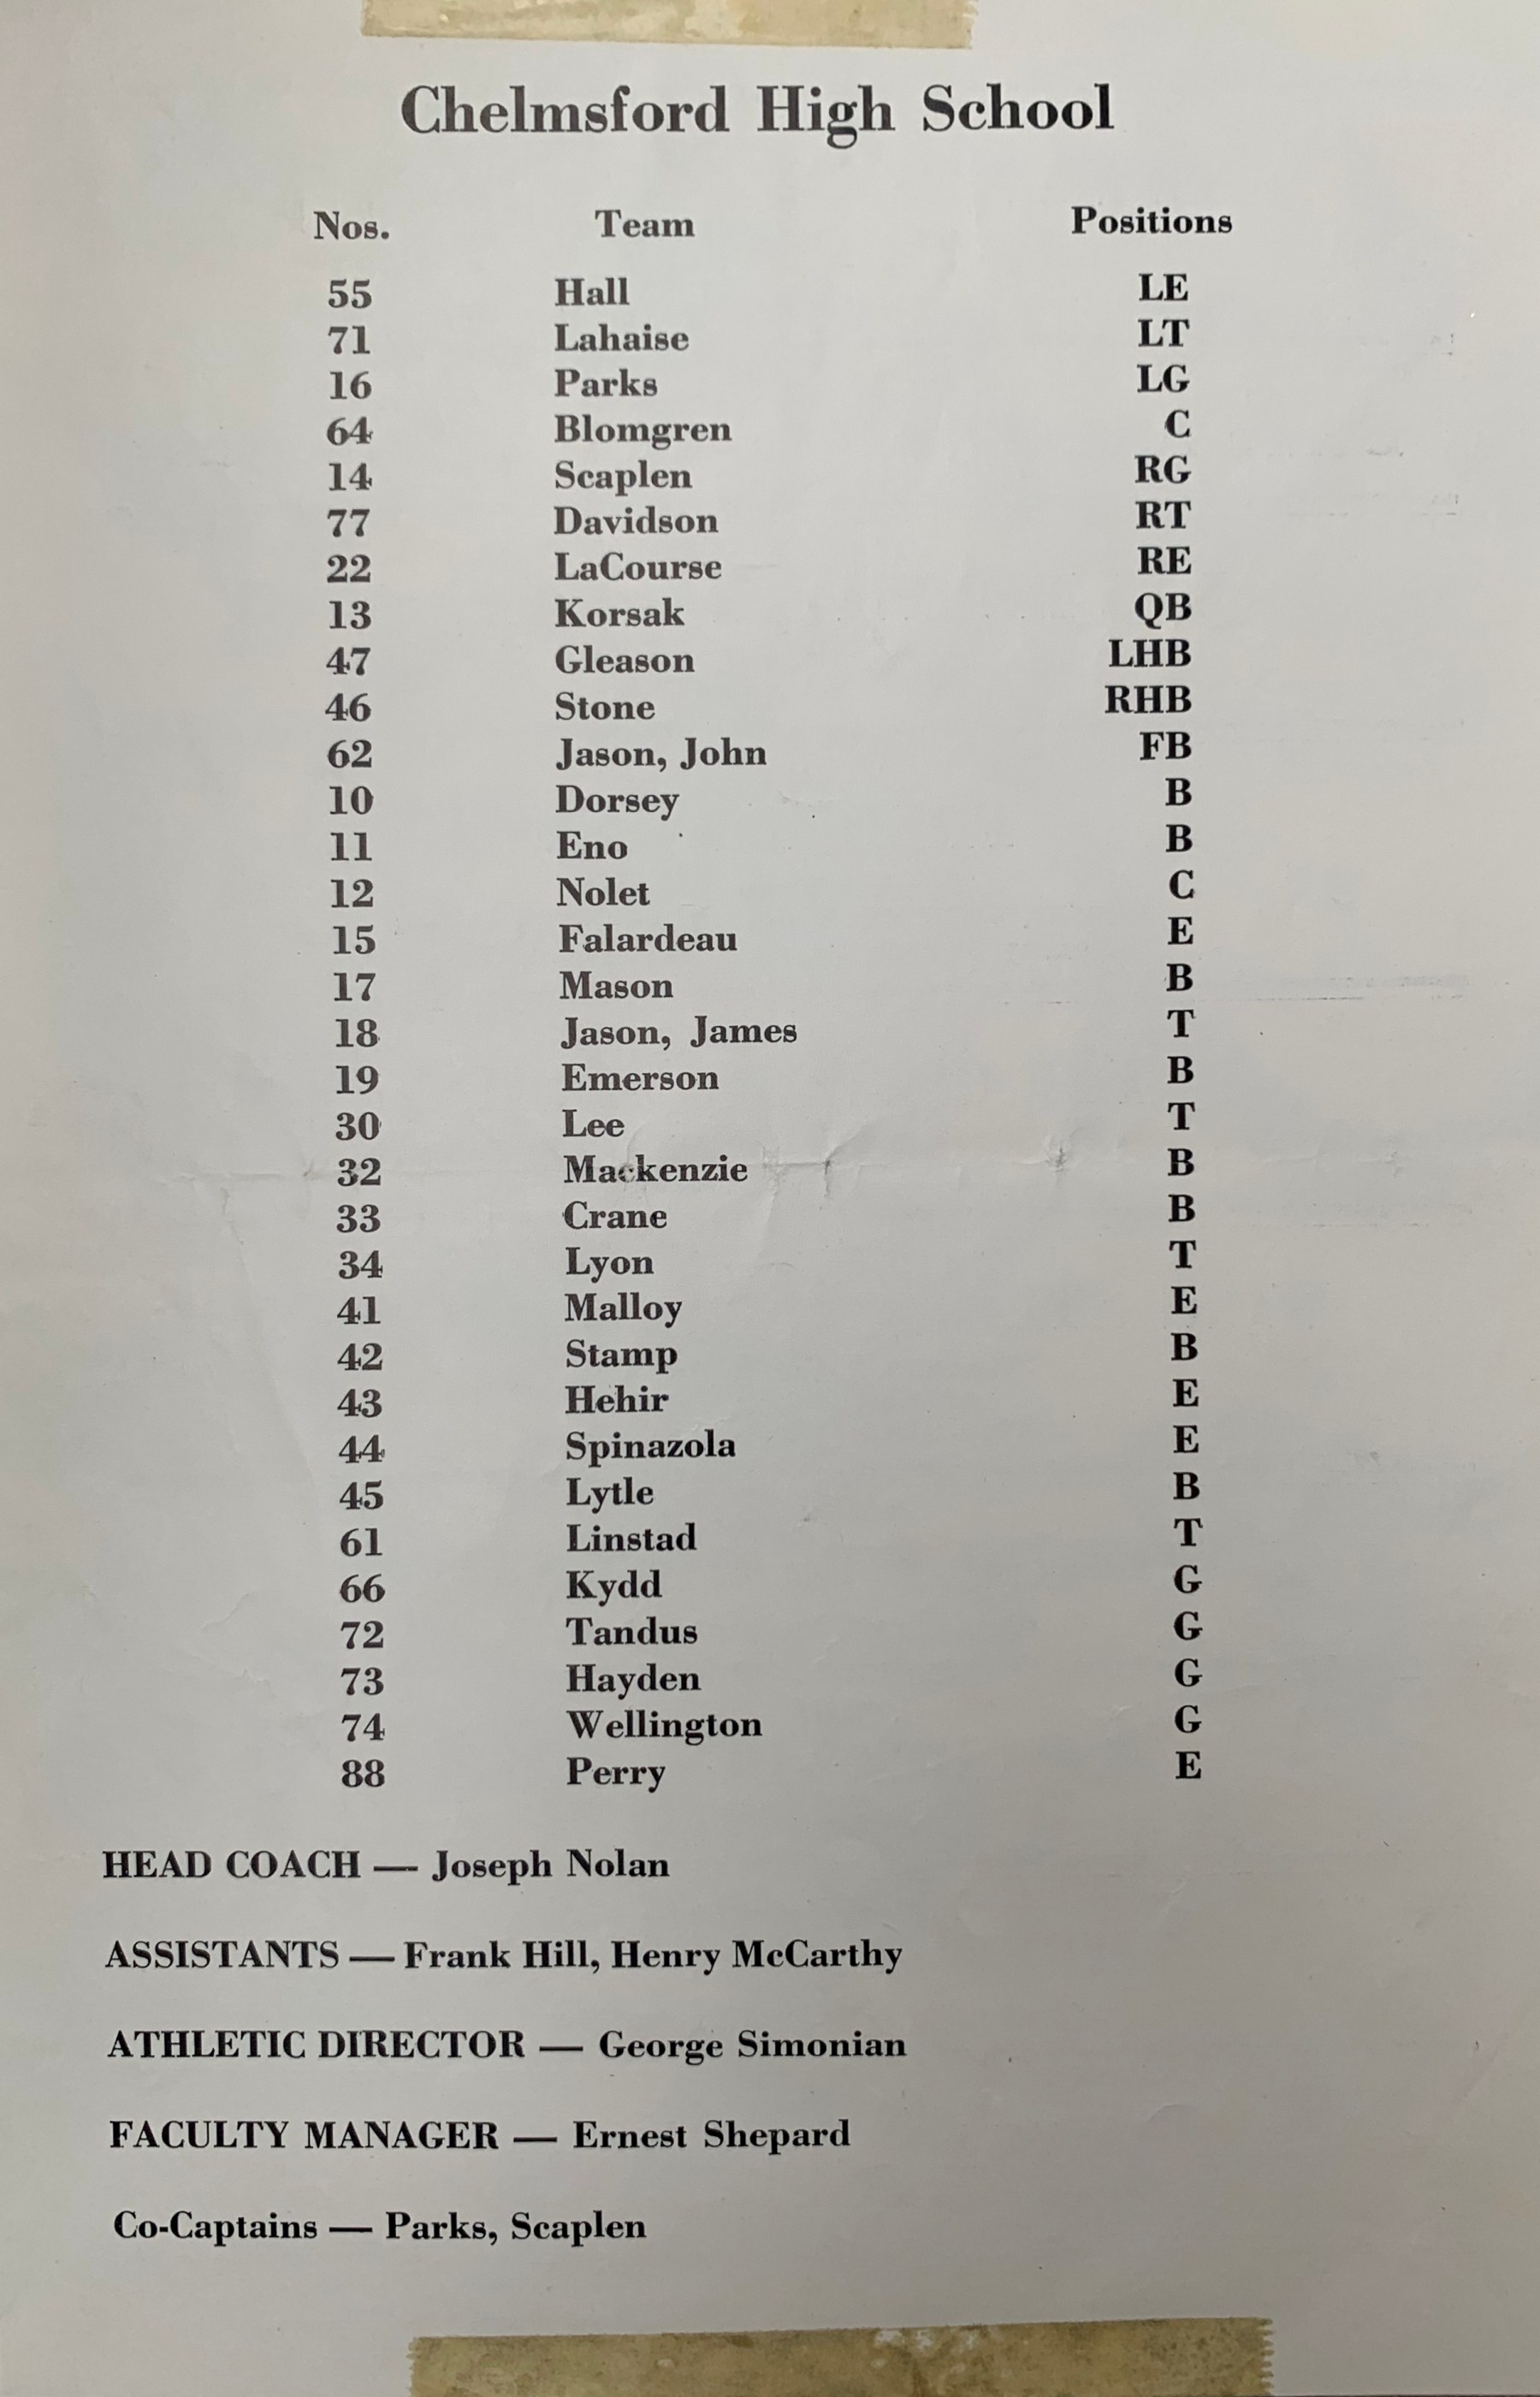 Chelmsford high school football roster 1958